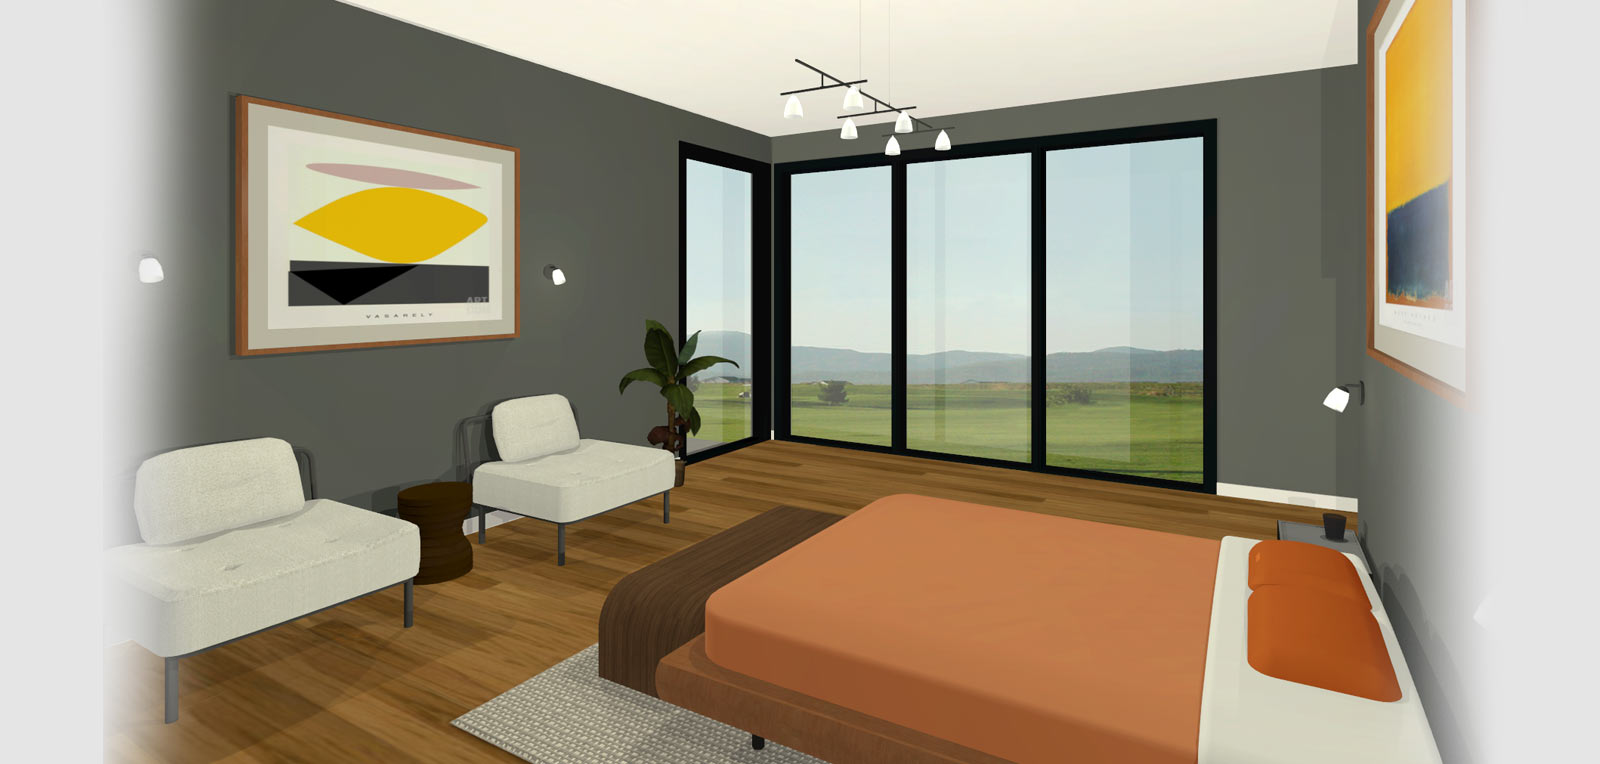 Home design software interior design software chief Home maker software